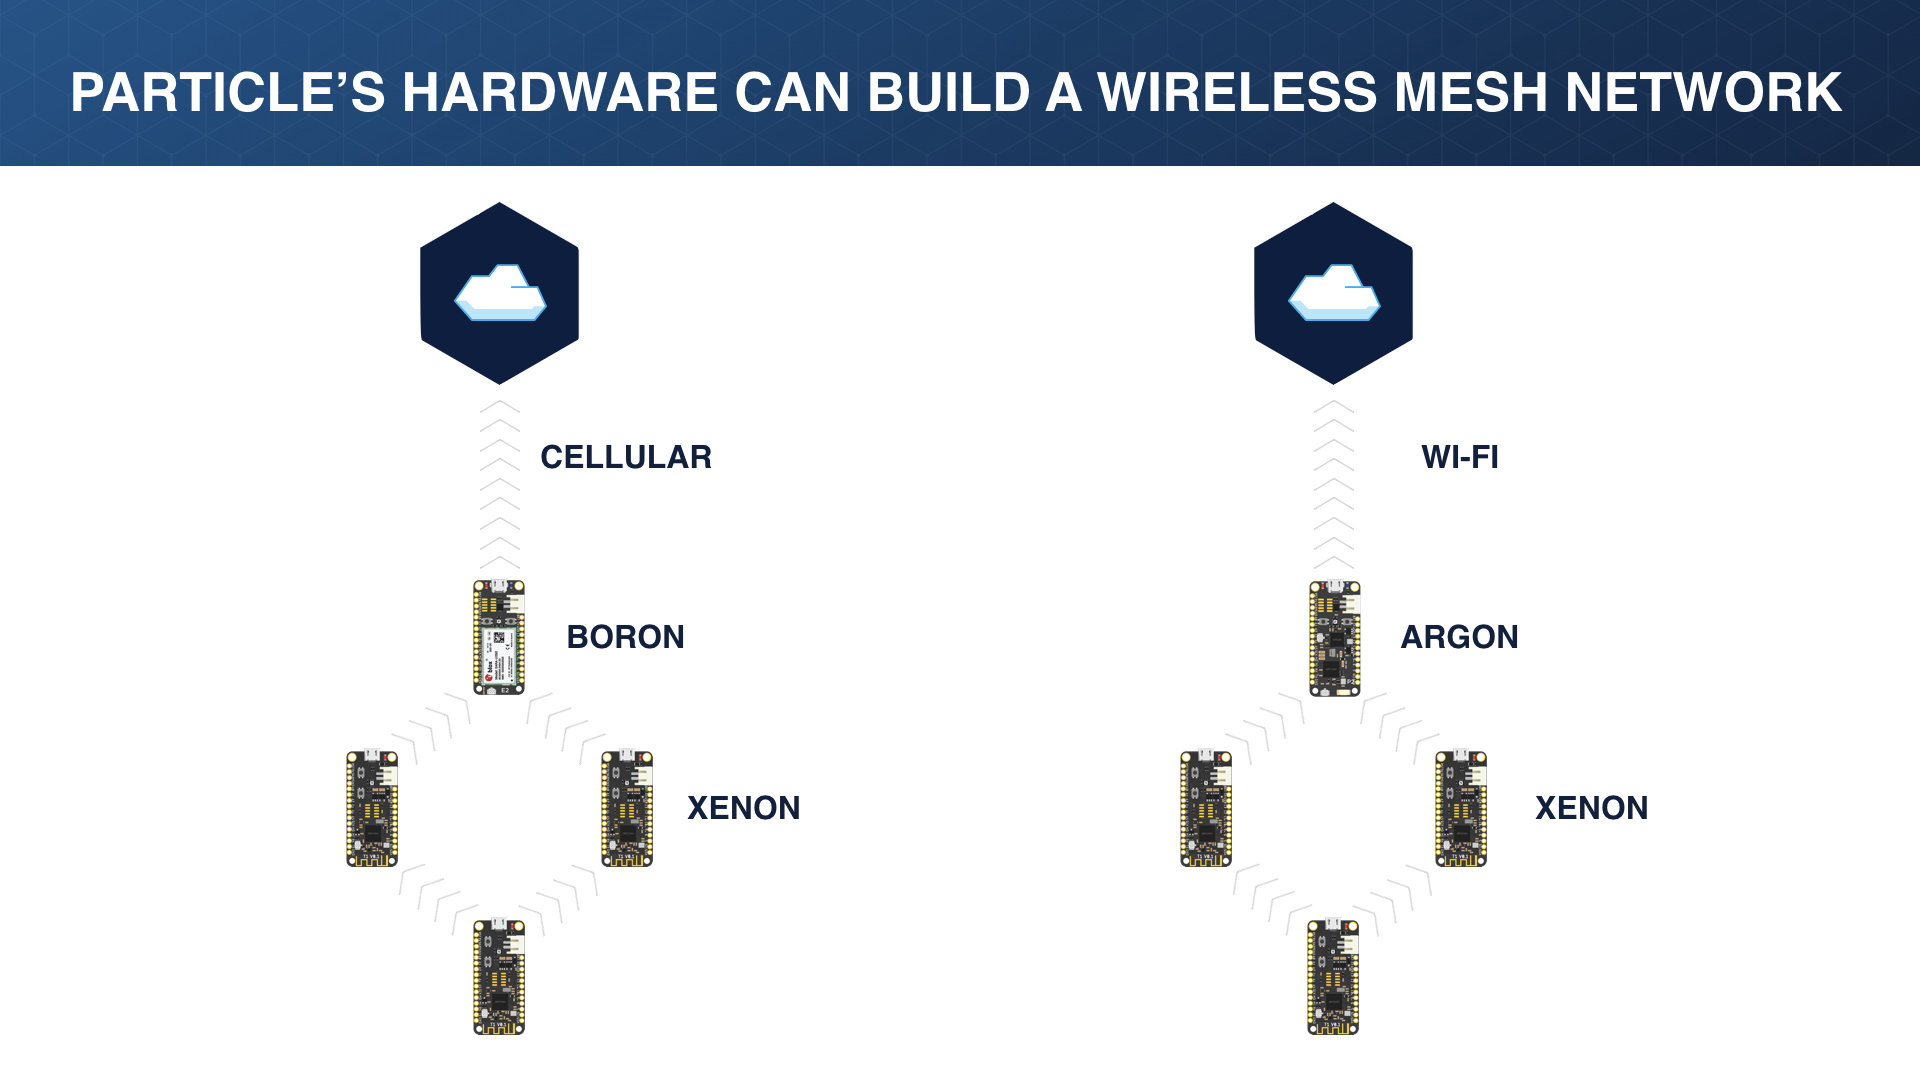 wireless-mesh-network-particle-hardware, wireless mesh networks